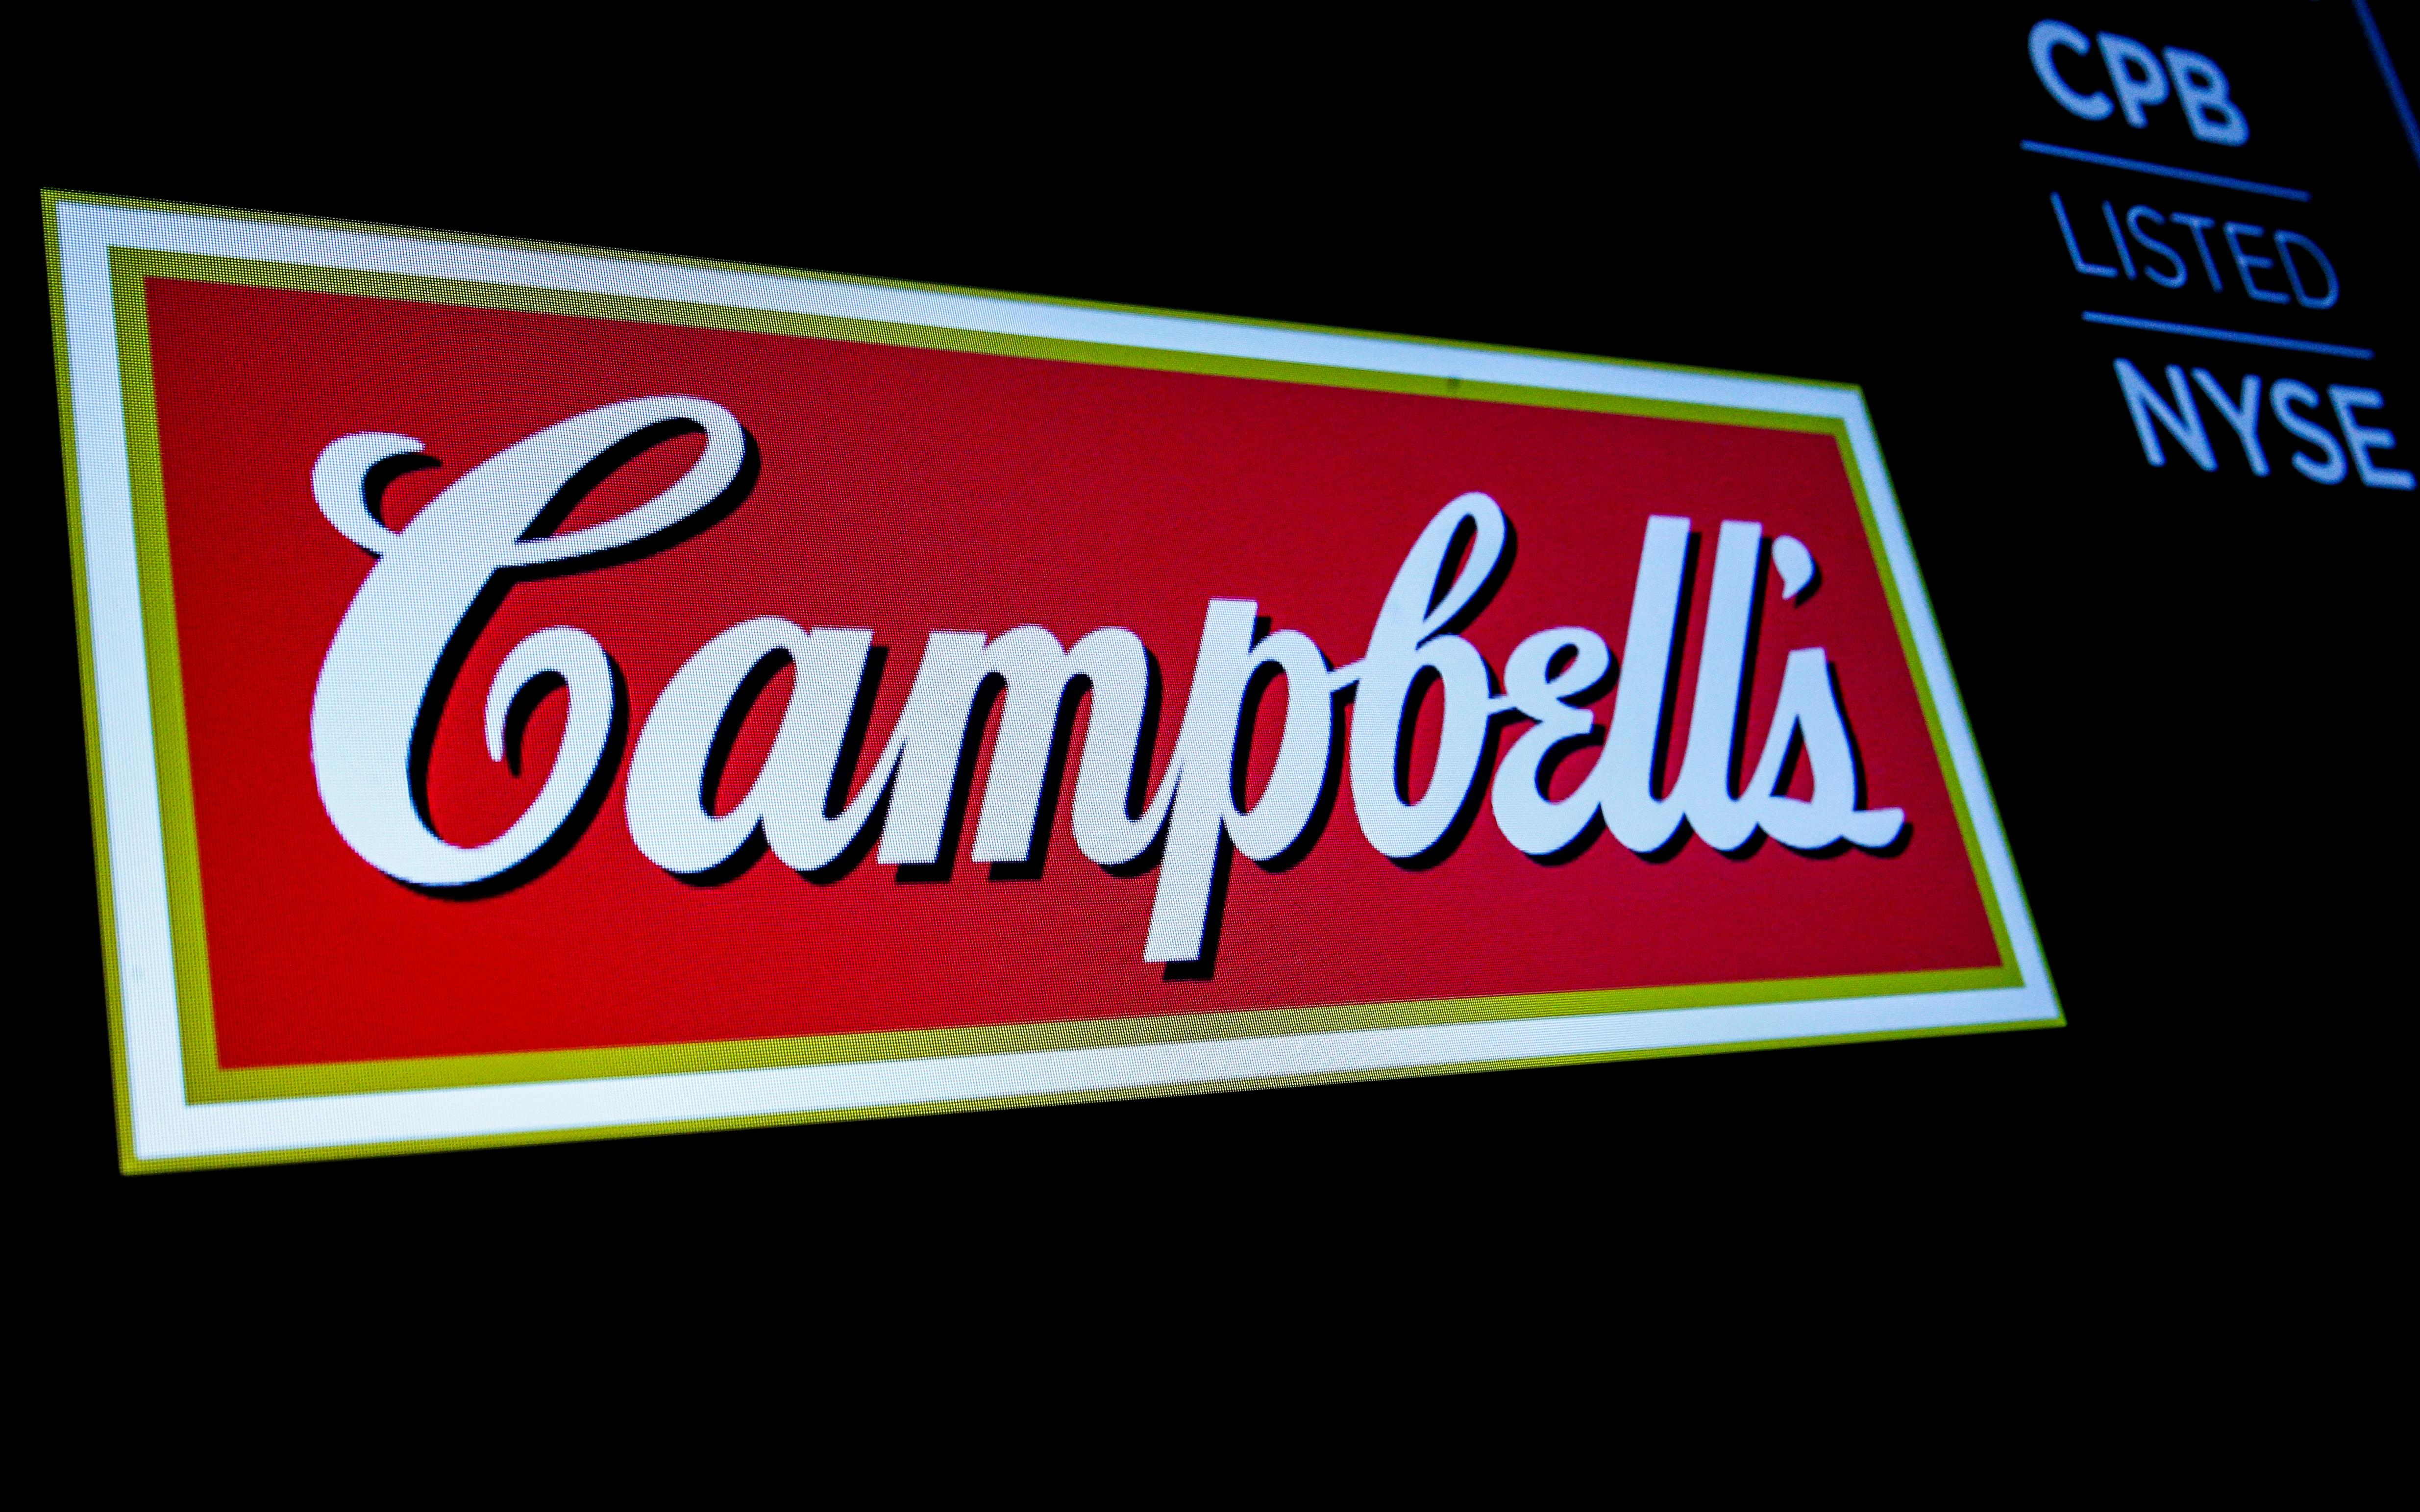 The logo and ticker for Campbell Soup Co. are displayed on a screen on the floor of the New York Stock Exchange (NYSE) in New York, U.S., May 18, 2018. Brendan McDermid